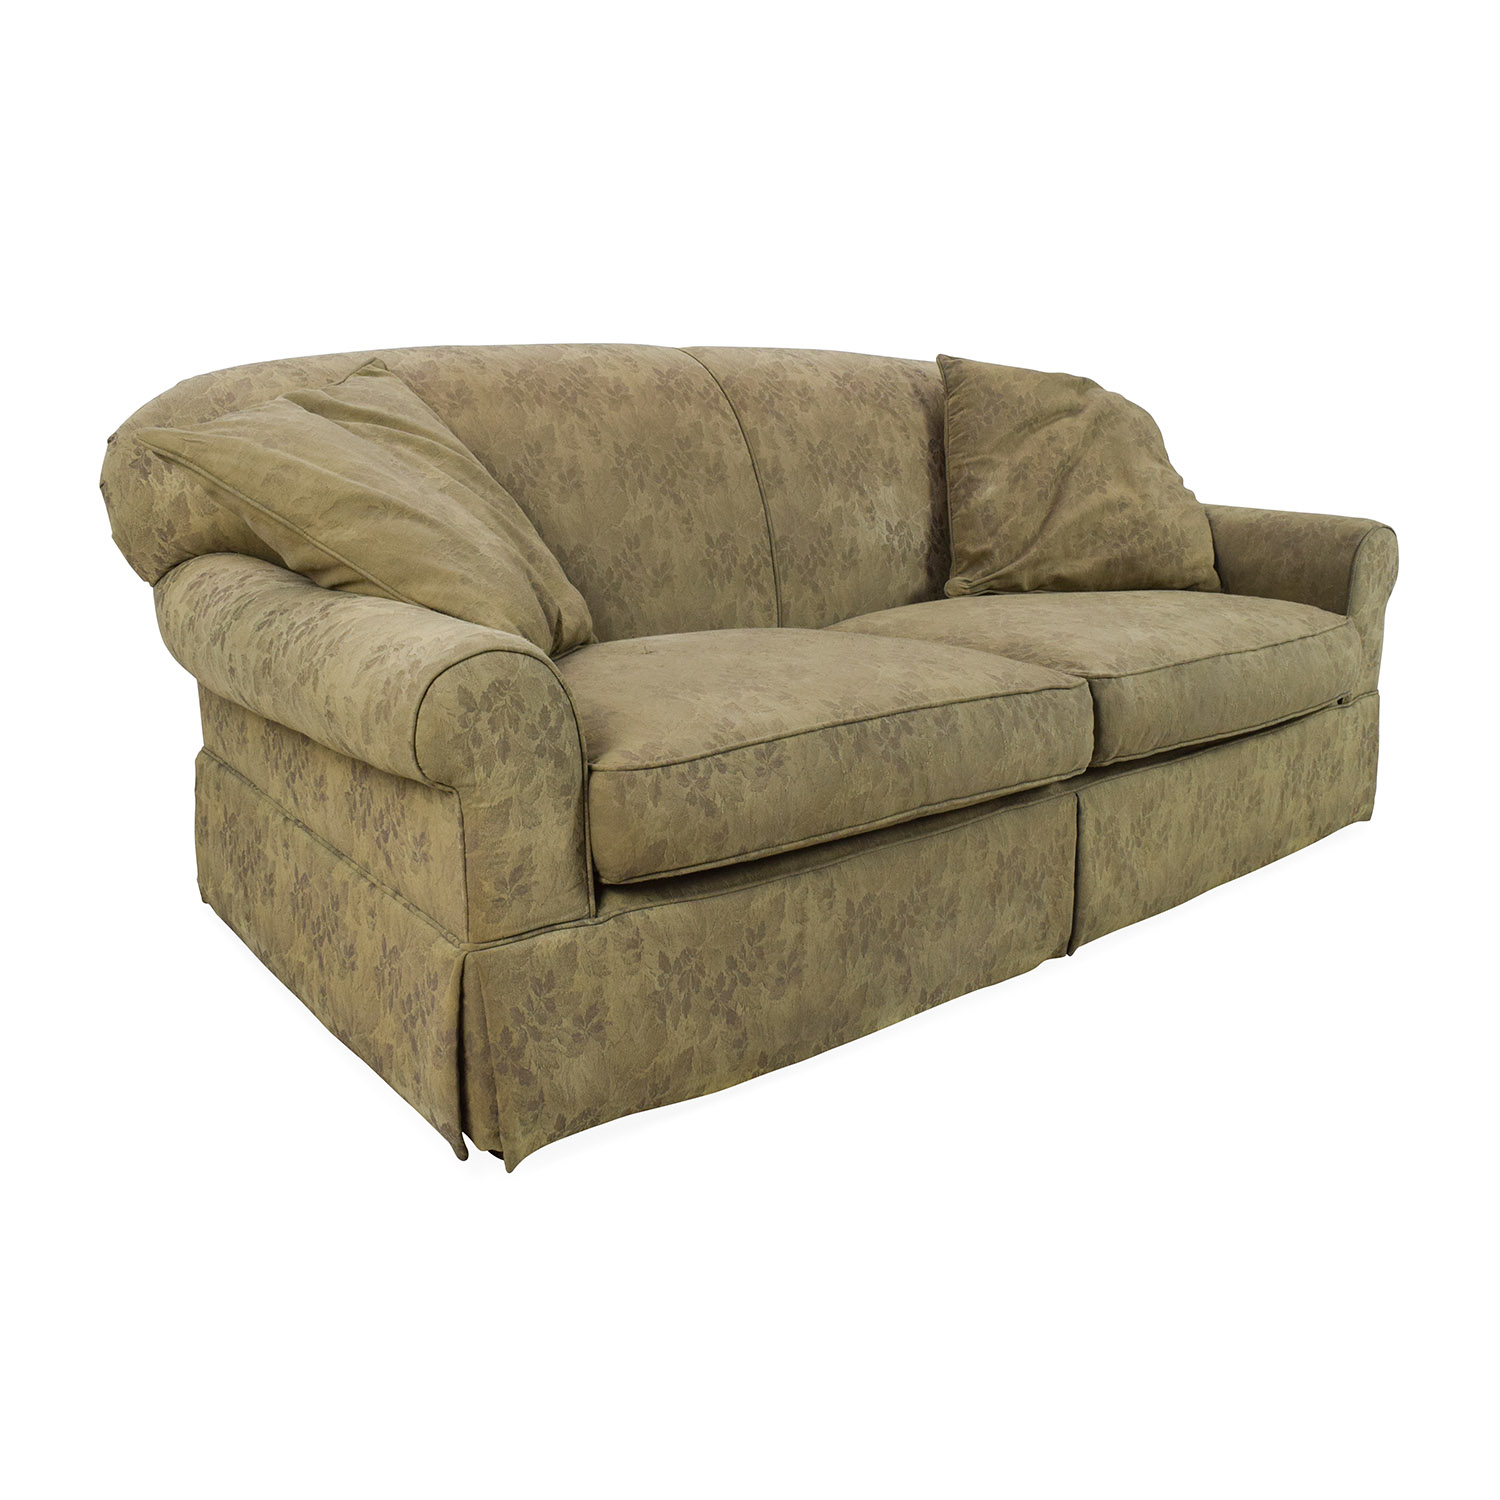 Classic sofas classic sofas second hand classic sofas on for Buy a cheap couch